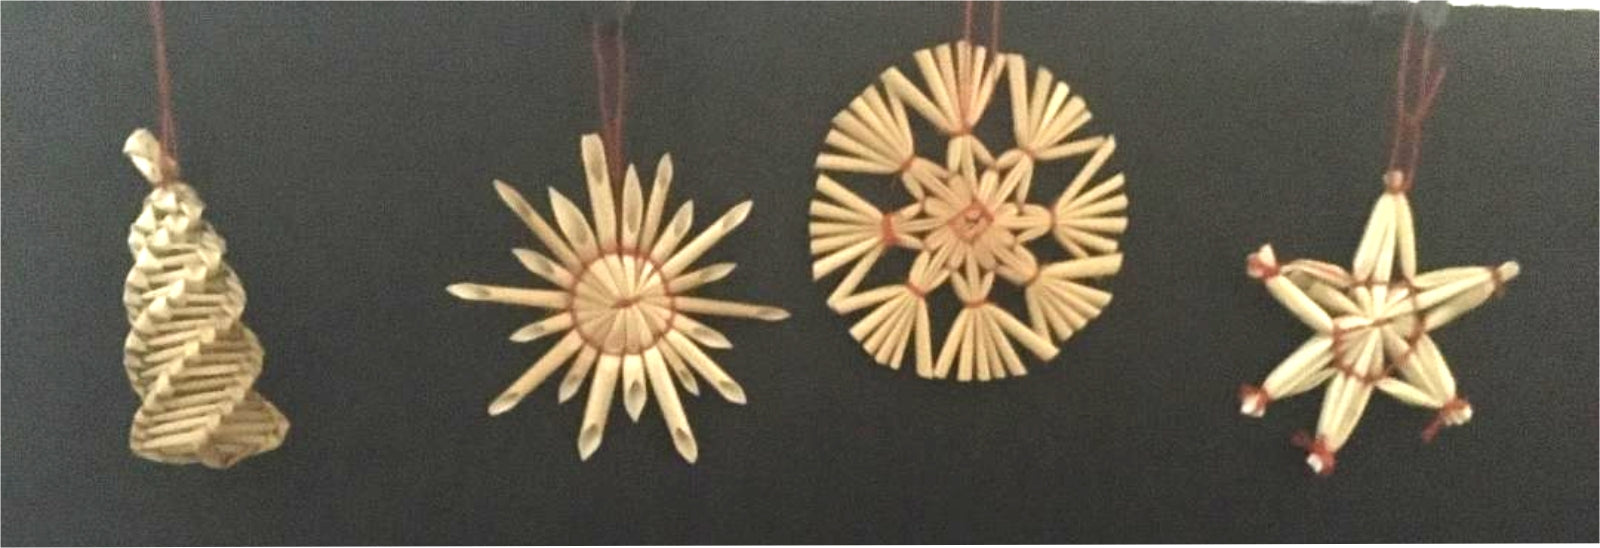 packet of straw ornaments